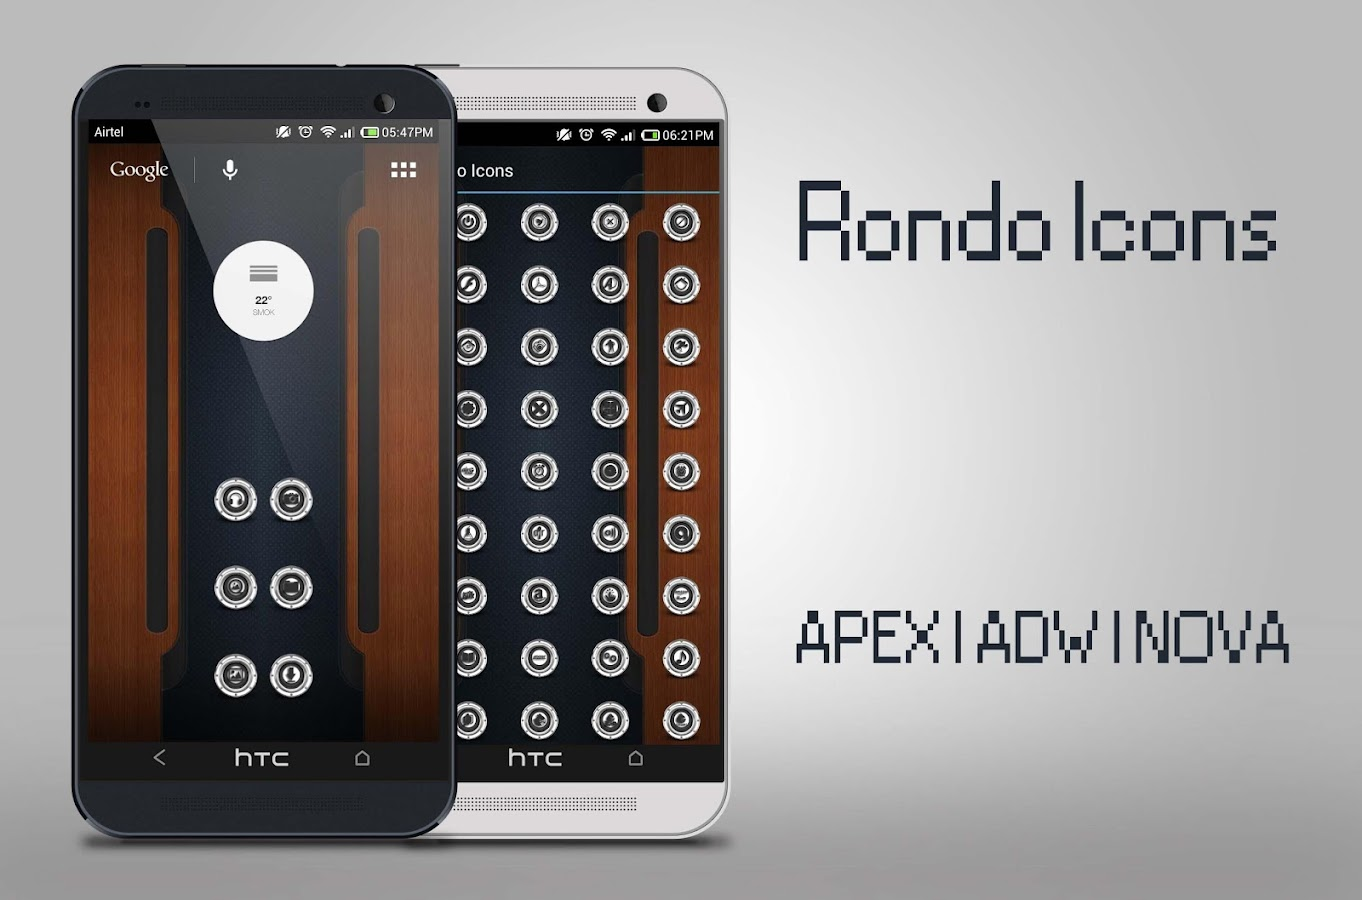 RONDO ICONS APEX NOVA ADW HOLA - screenshot